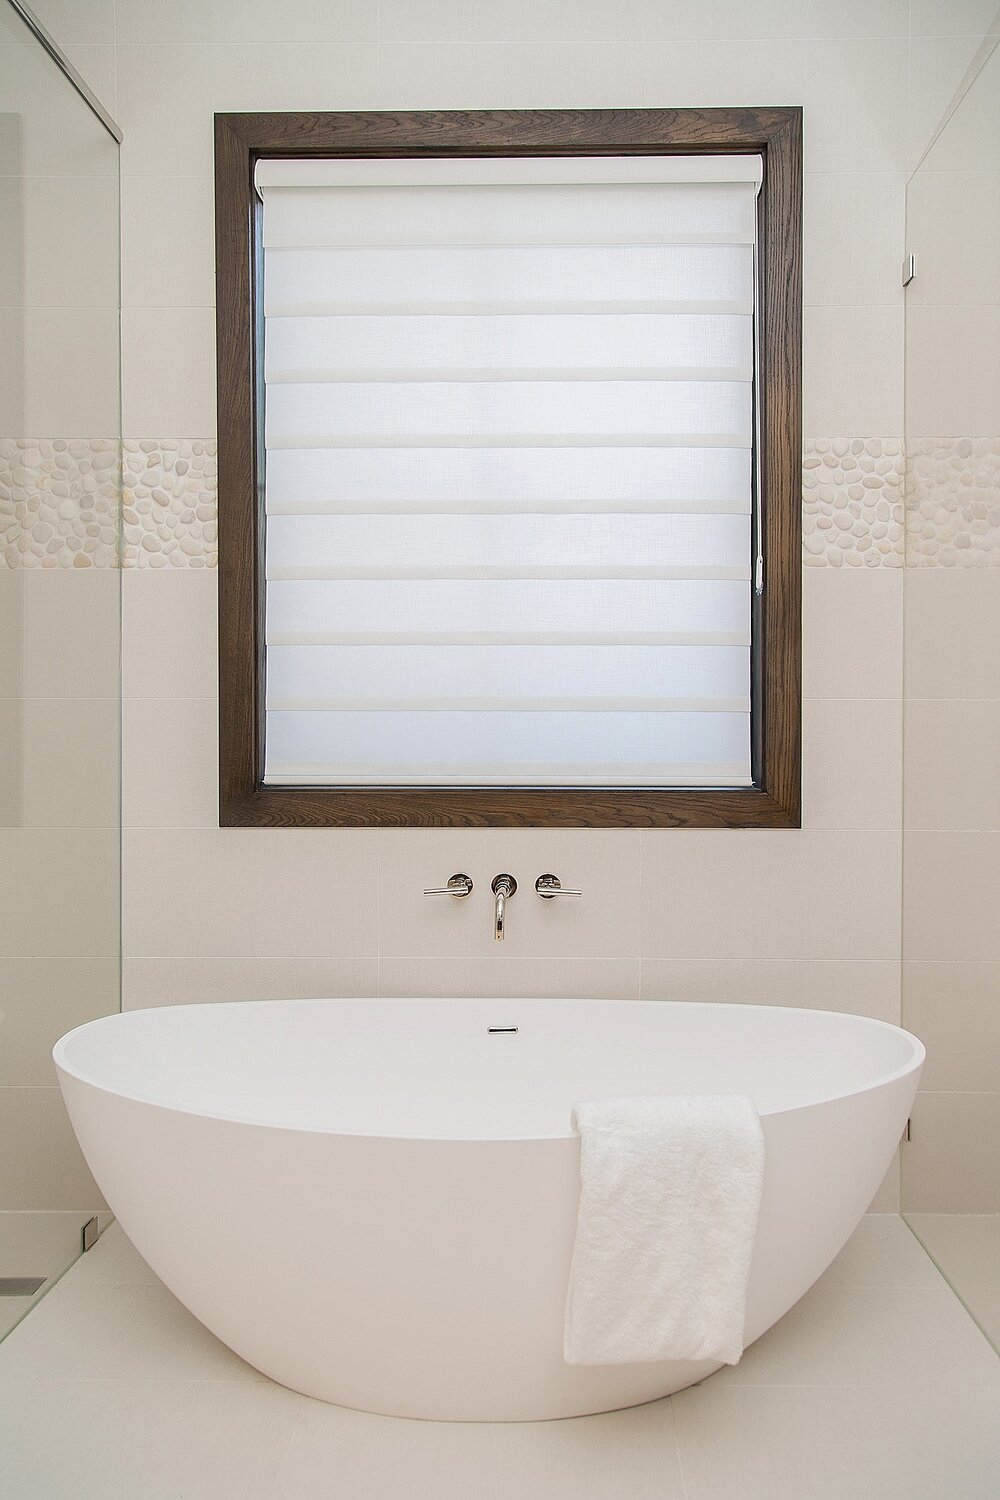 You can see the glass on each side of this tub, with dimensions kept to a minimum to get maximum space for the adjacent shower. Carla Aston, Designer | Tori Aston, Photographer